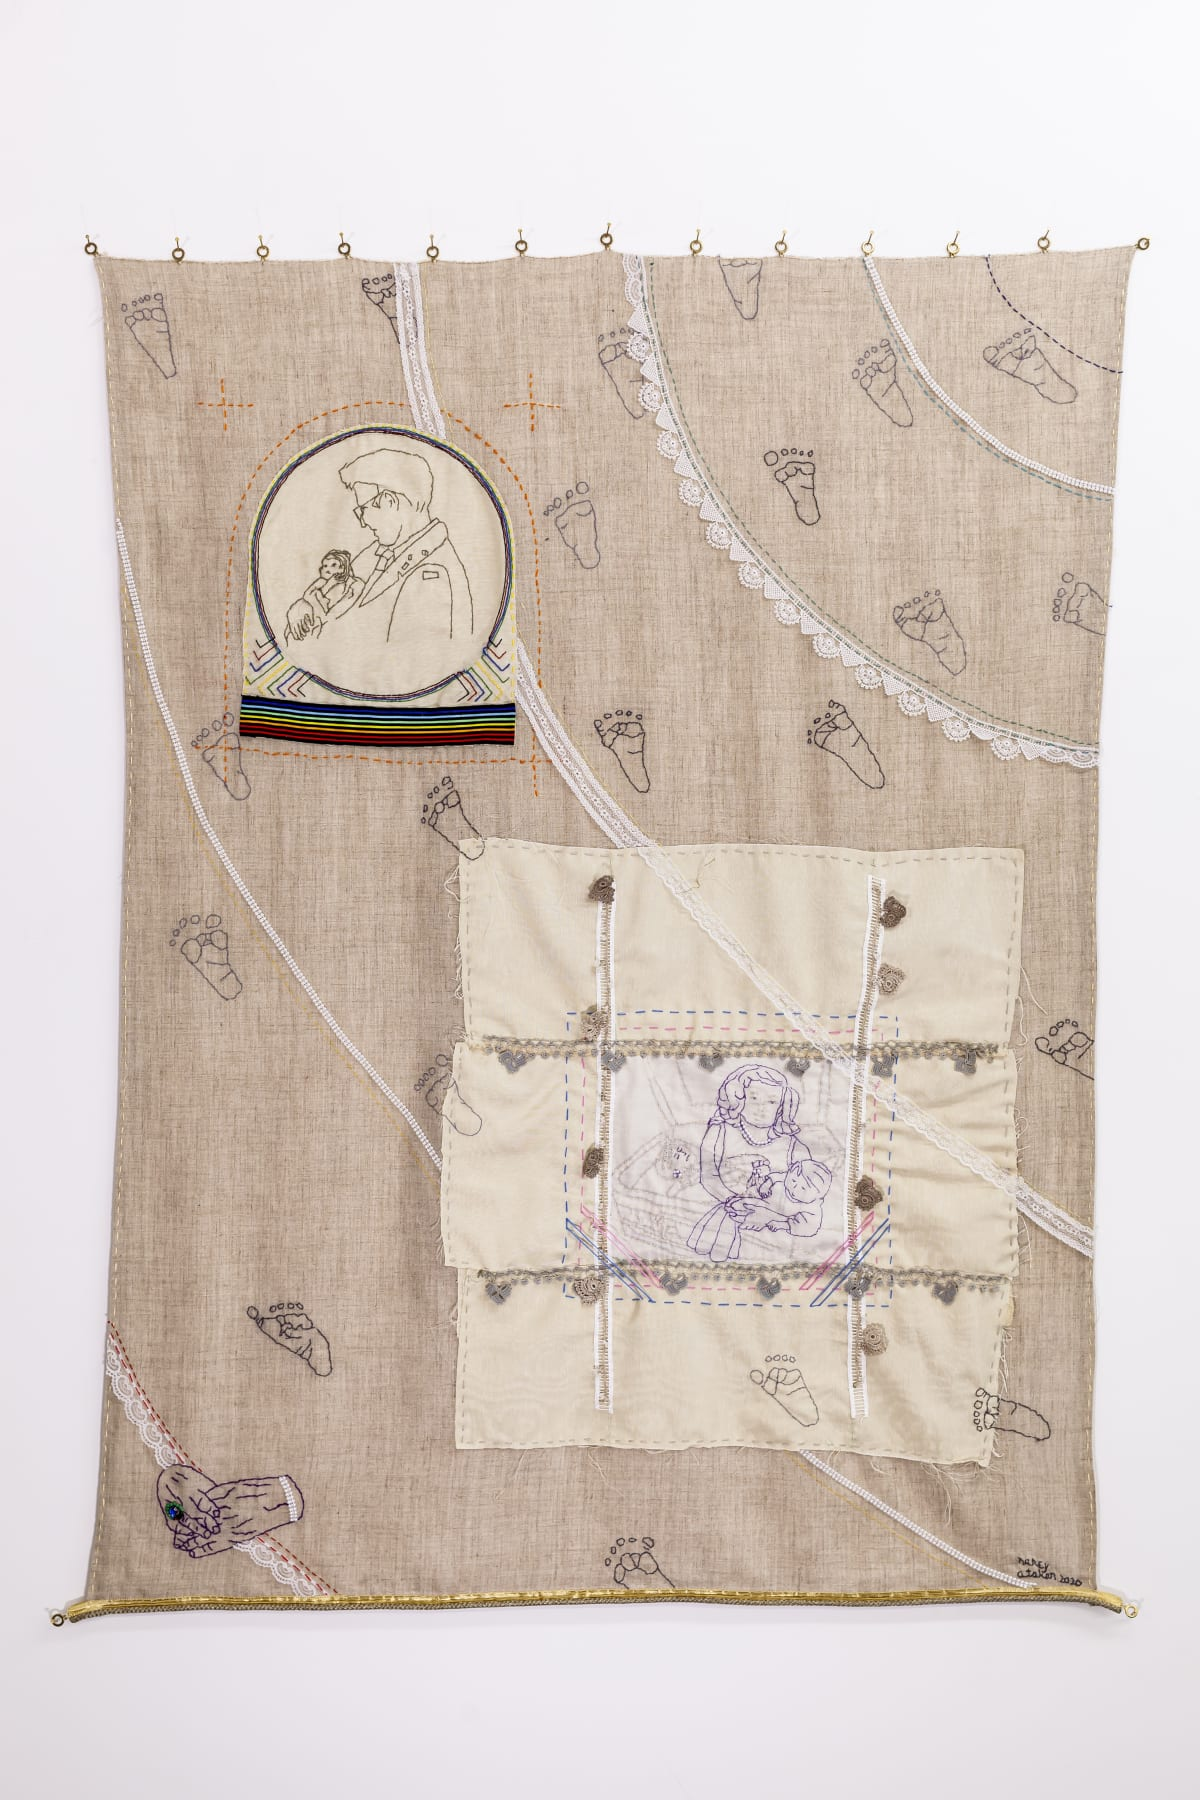 Challenging Cliché 2 (Family Memories), 102 x 143 cm, cloth, needlework, lace